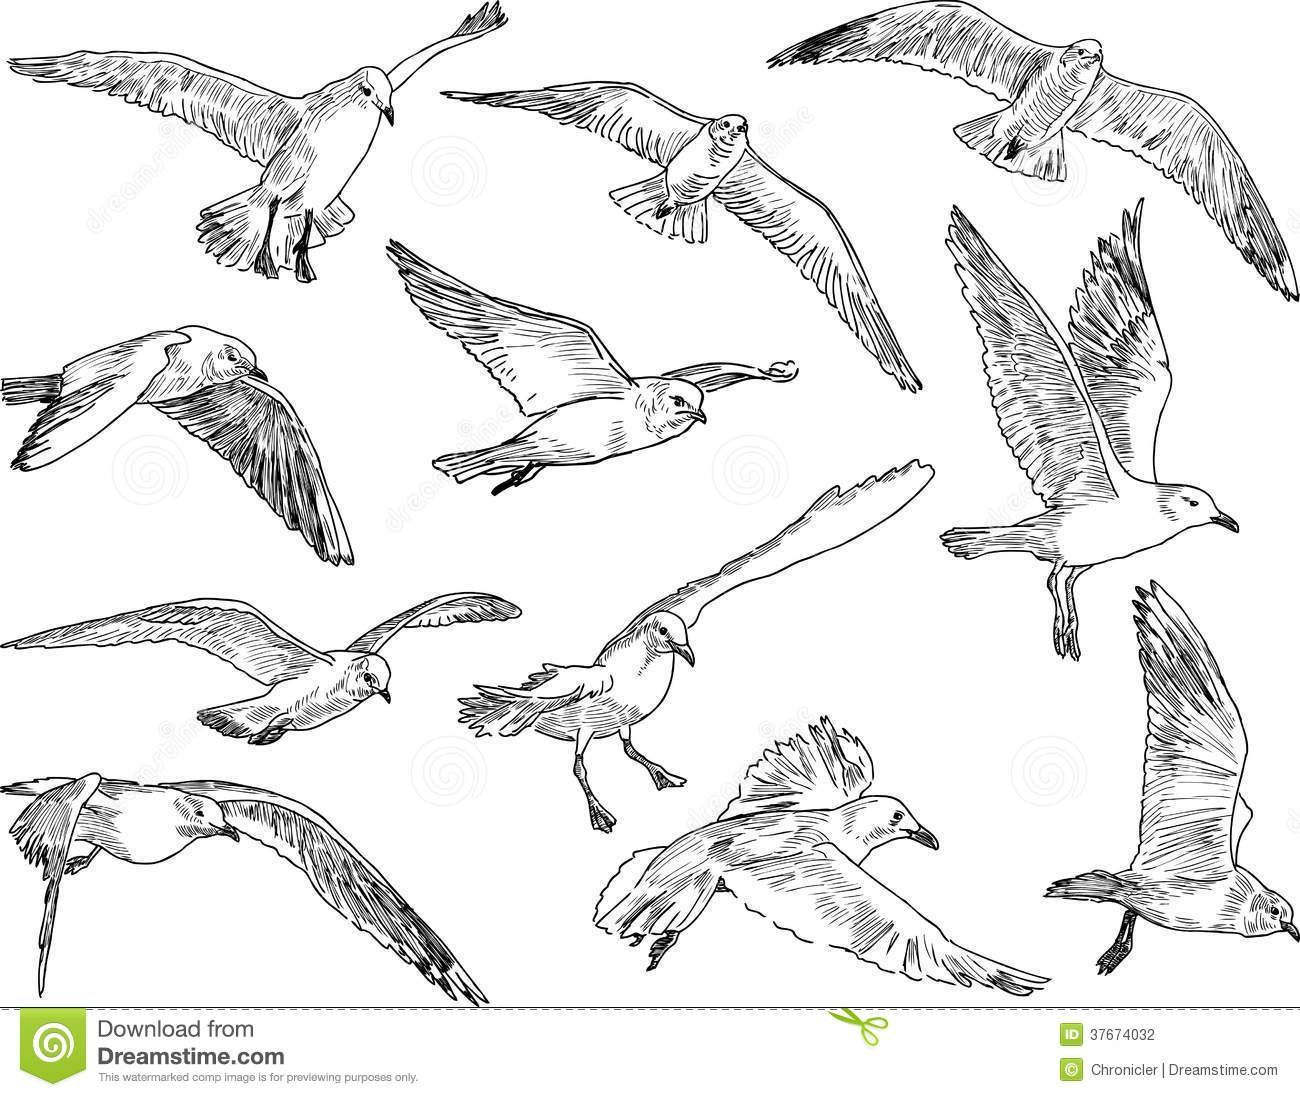 Image Result For Very Easy Drawings Of Seagulls Flying Seagull Tattoo Flying Bird Drawing Seagull Illustration